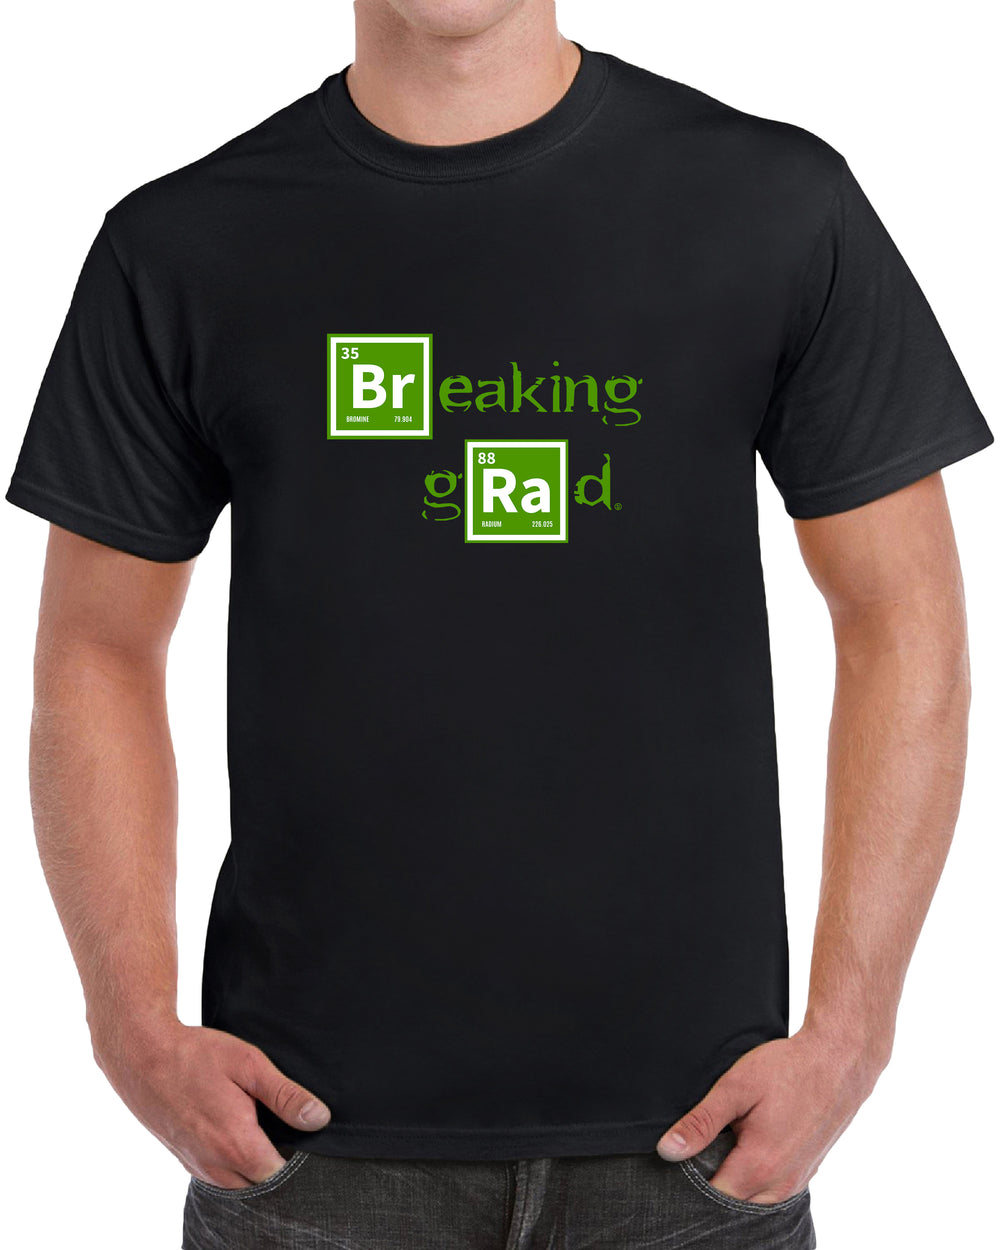 "Breaking Grad ""Br"" ""Ra"" Letters in Blocks - Black"